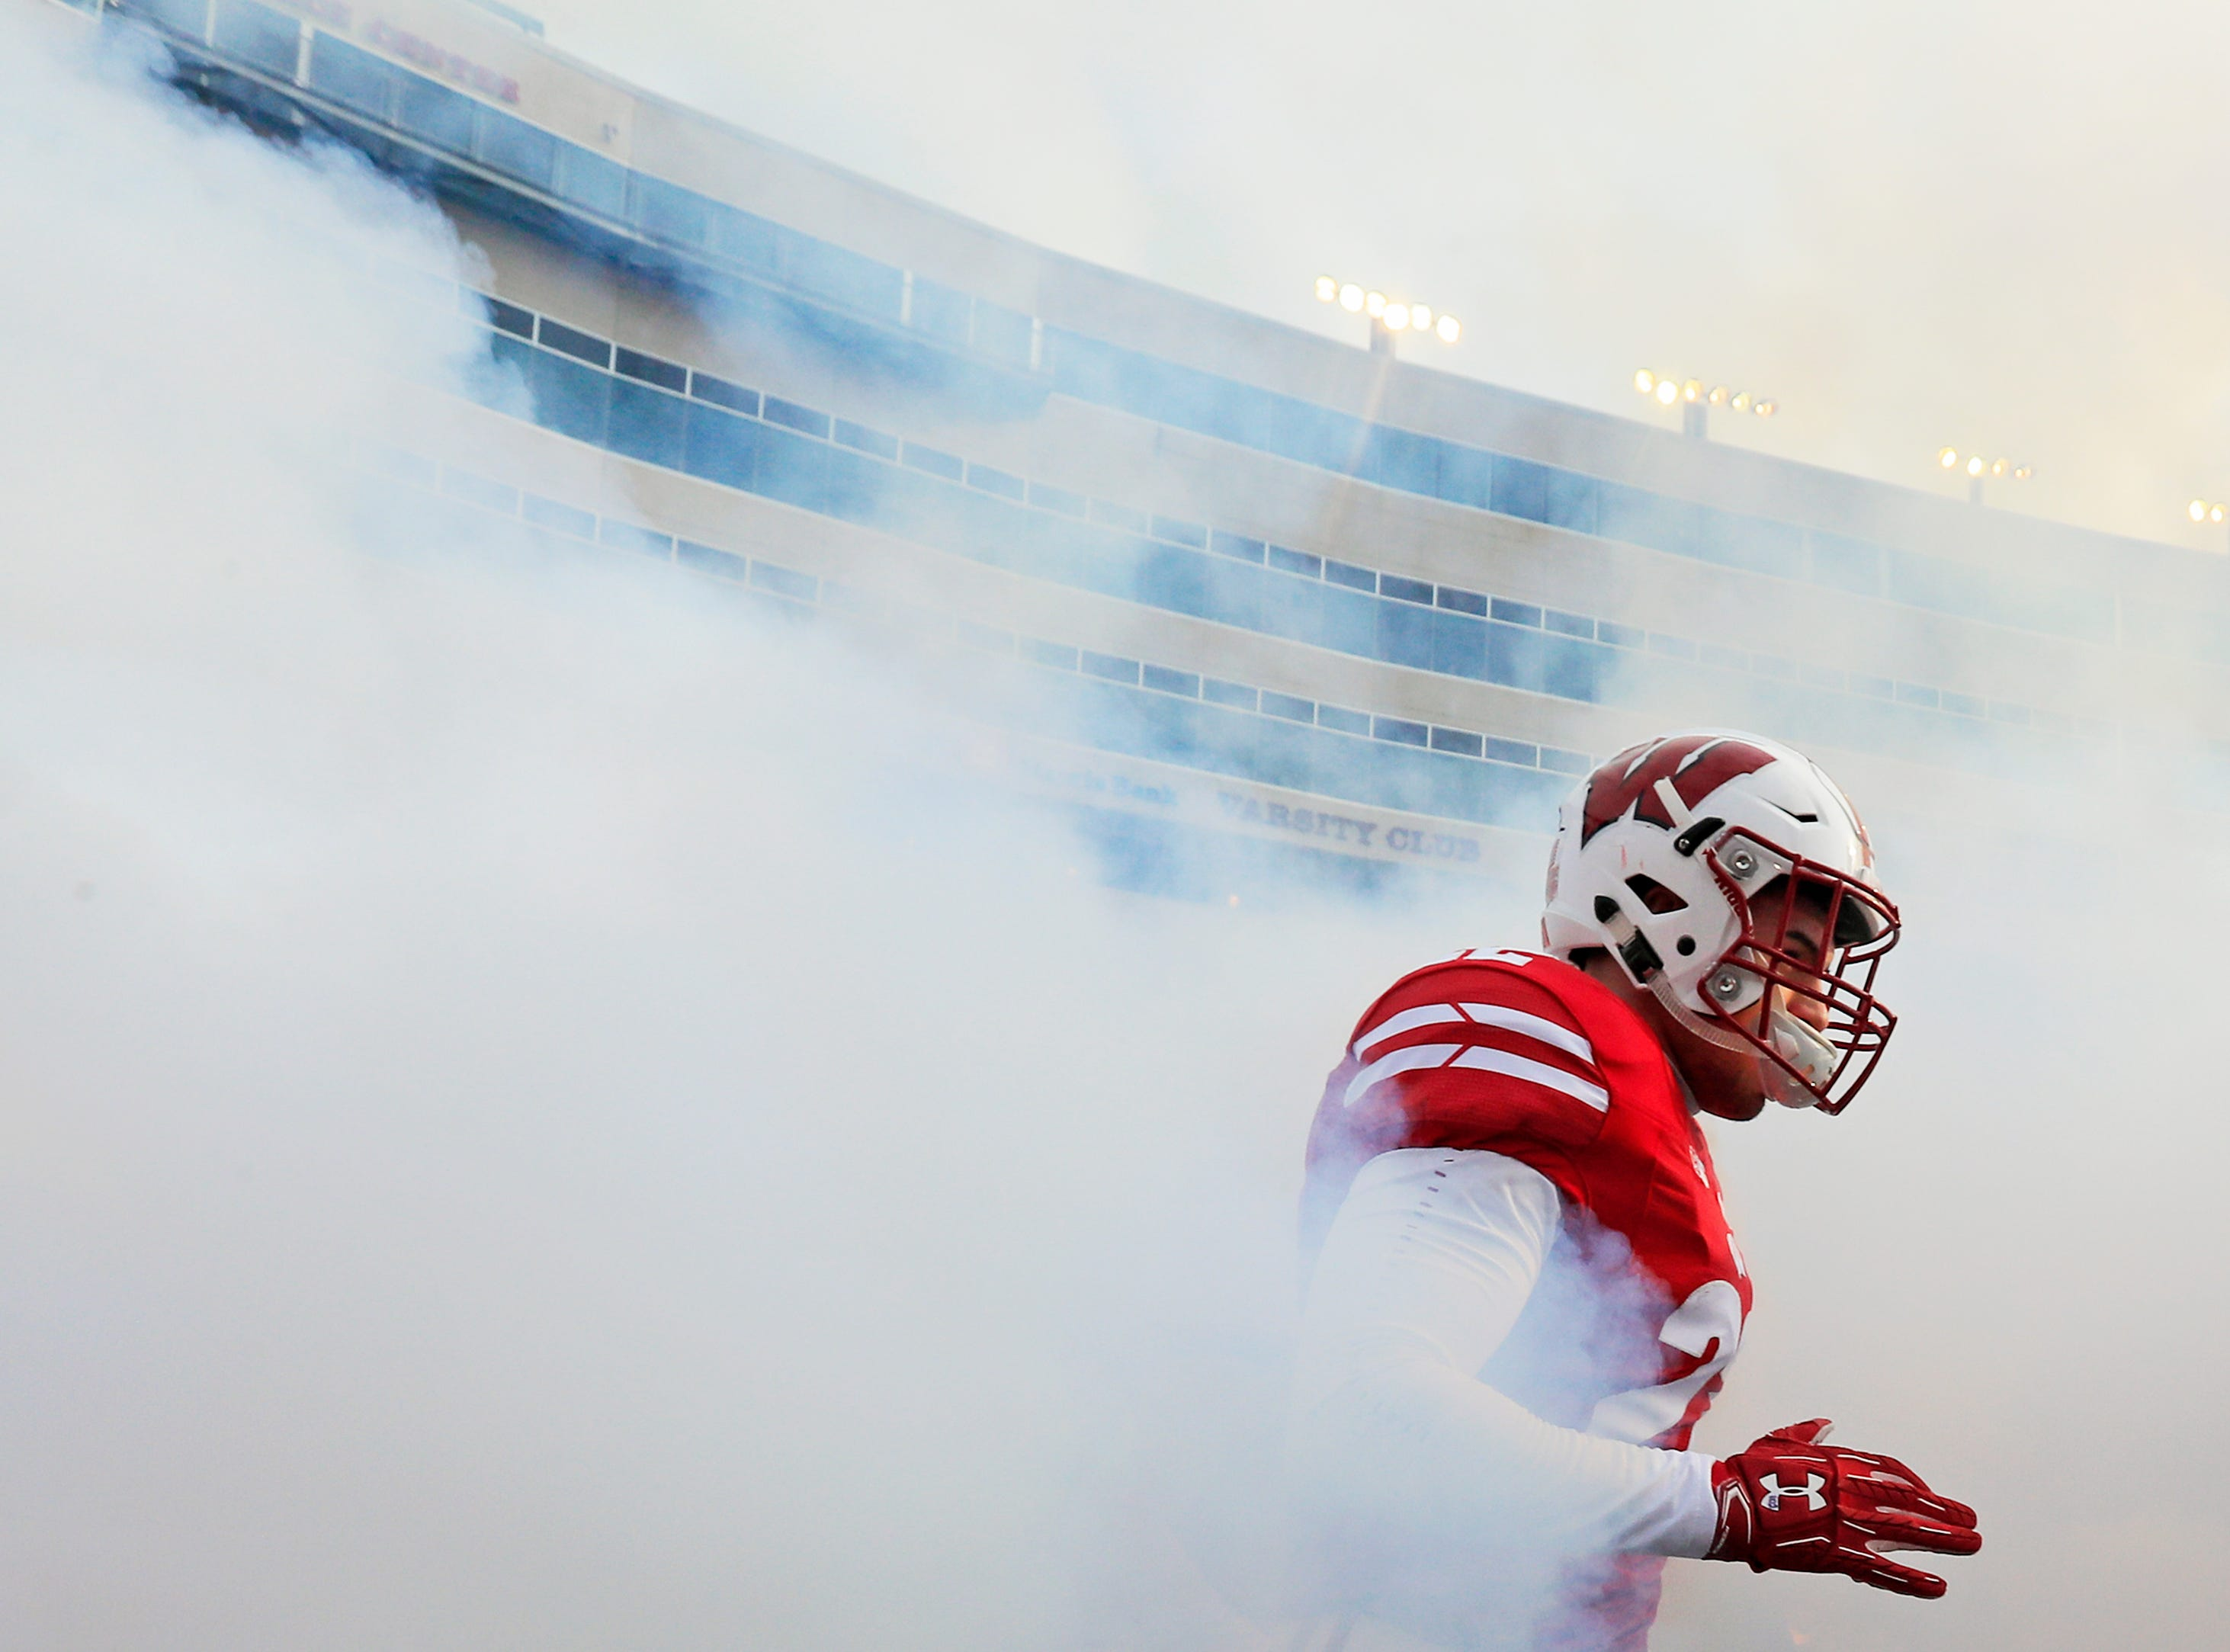 The Wisconsin Badgers take the field for a Big Ten football game at Camp Randall Stadium on Saturday, November 3, 2018 in Madison, Wis.Adam Wesley/USA TODAY NETWORK-Wisconsin